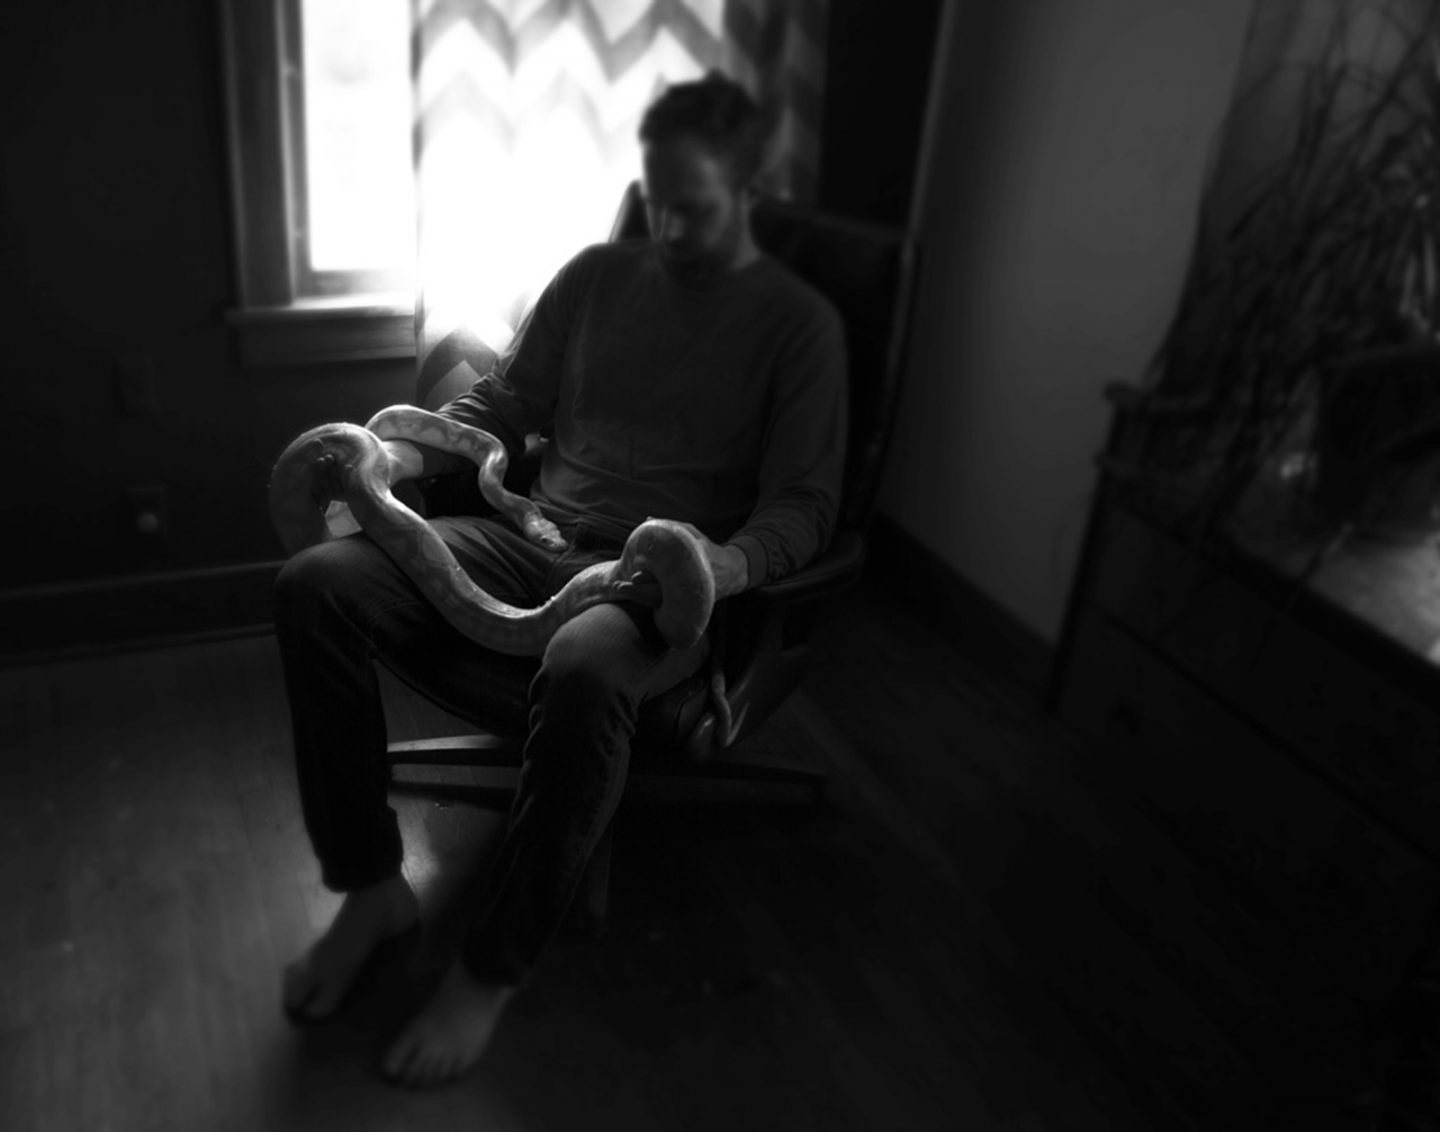 iGNANT-Photography-Daniel-Coburn-Becoming-A-Spector-013